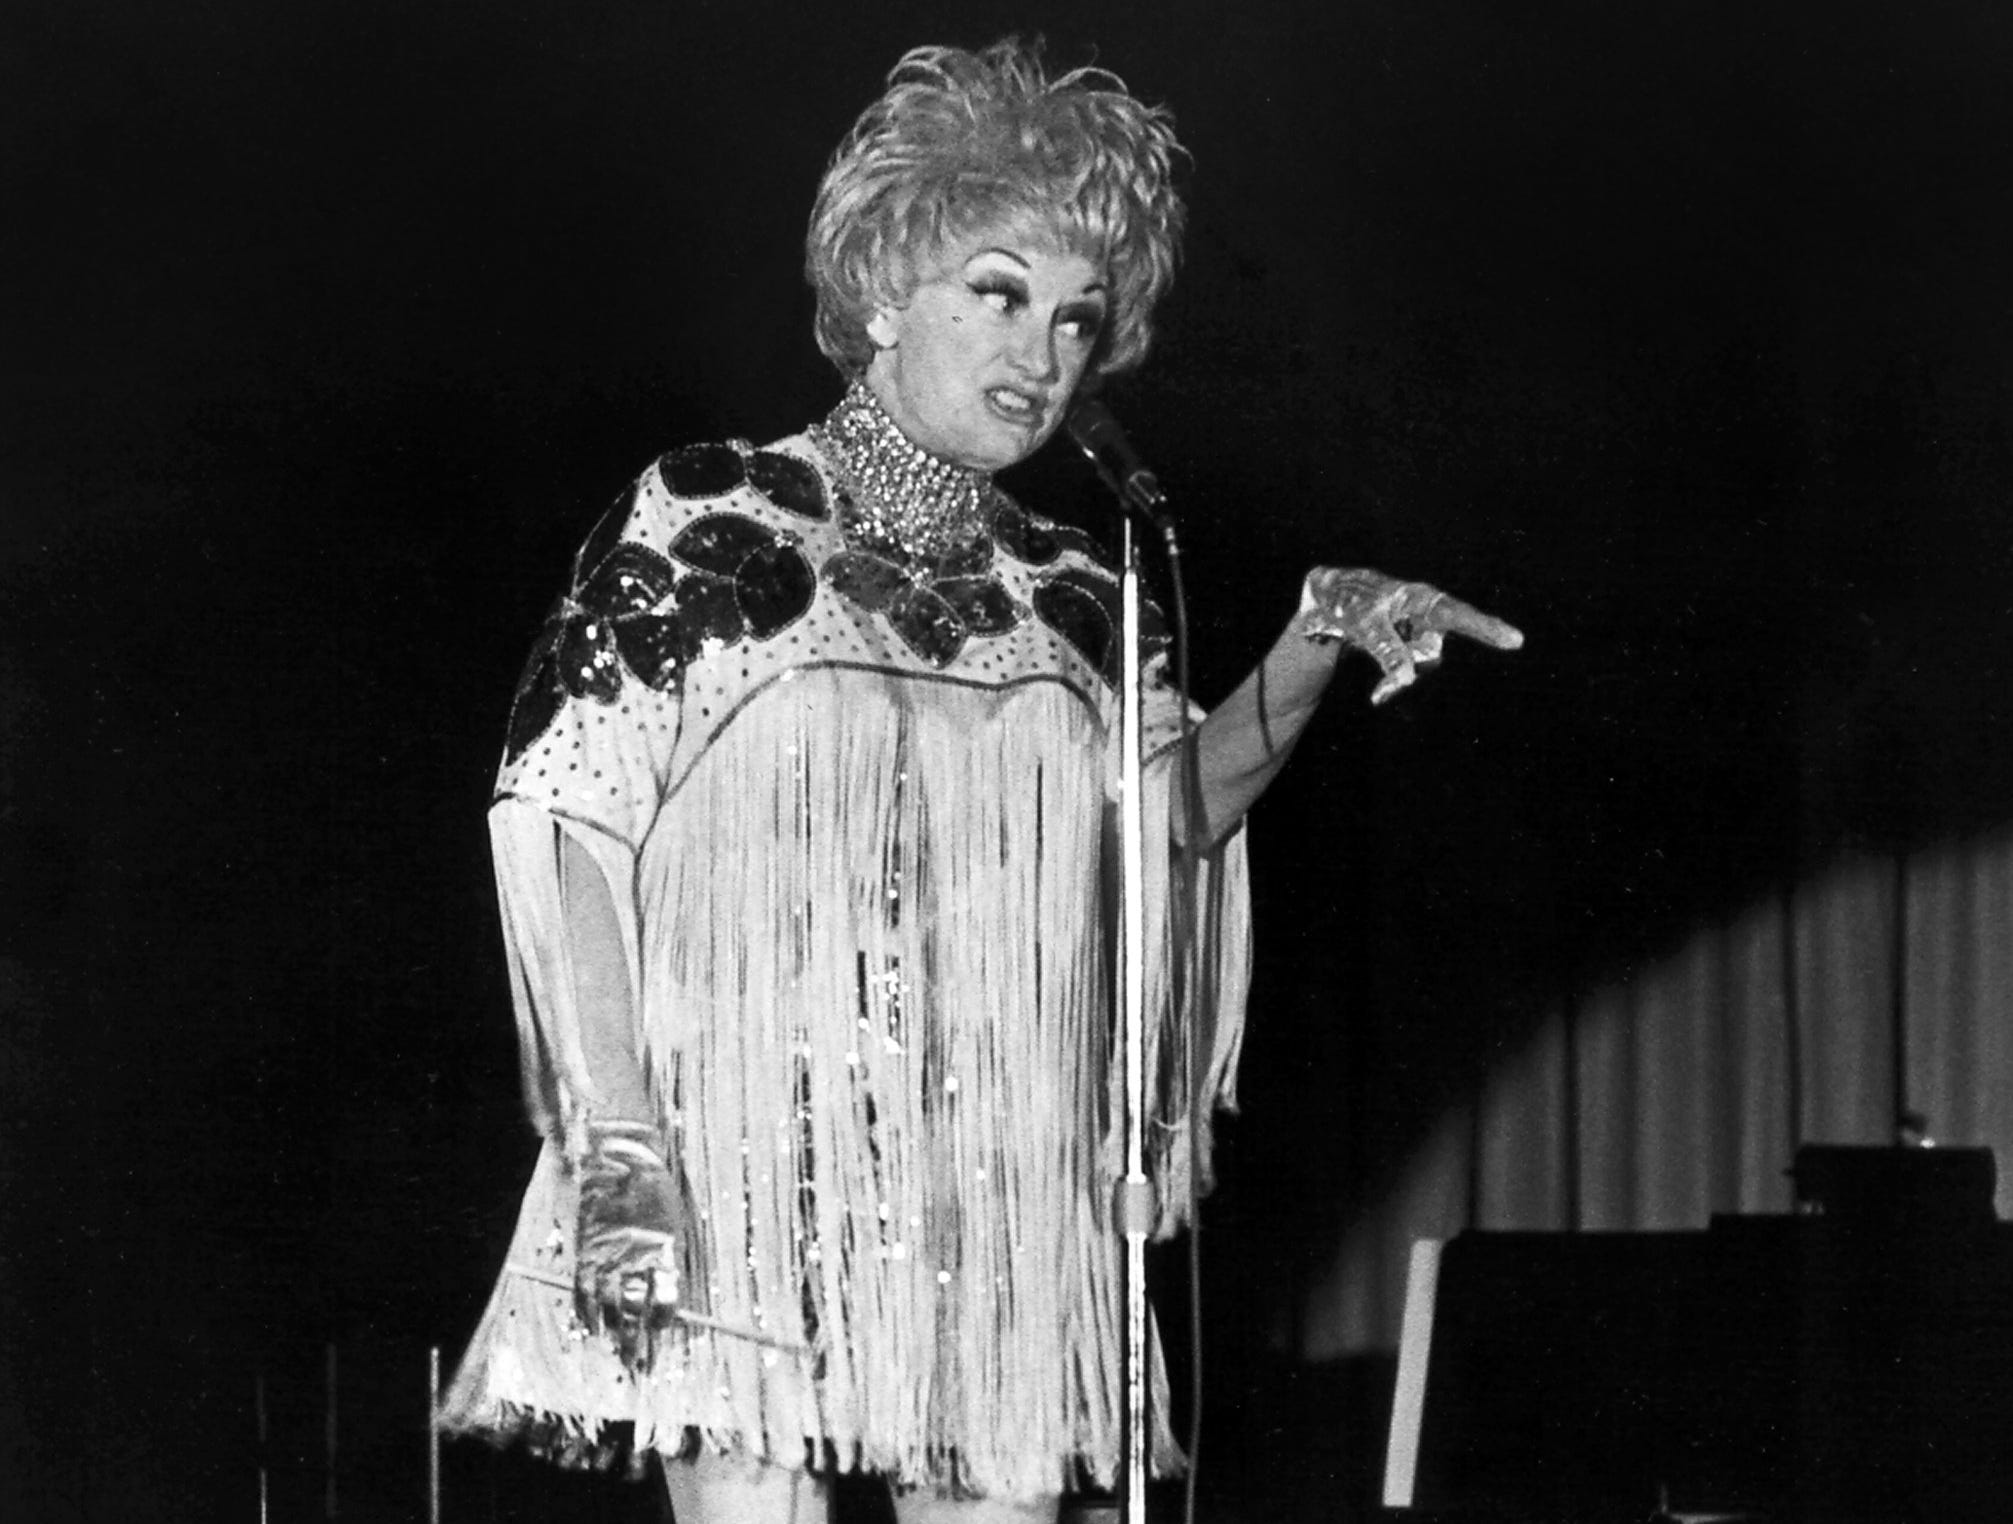 February 22, 1979 - Funny lady Phyllis Diller made a fashion statement as she brought her comedy act to 250 at the Airport Hilton's Rainbow Room on Feb. 22, 1979. She was booked for eight performances over four nights, along with the 60s singing group The Fifth Dimension.